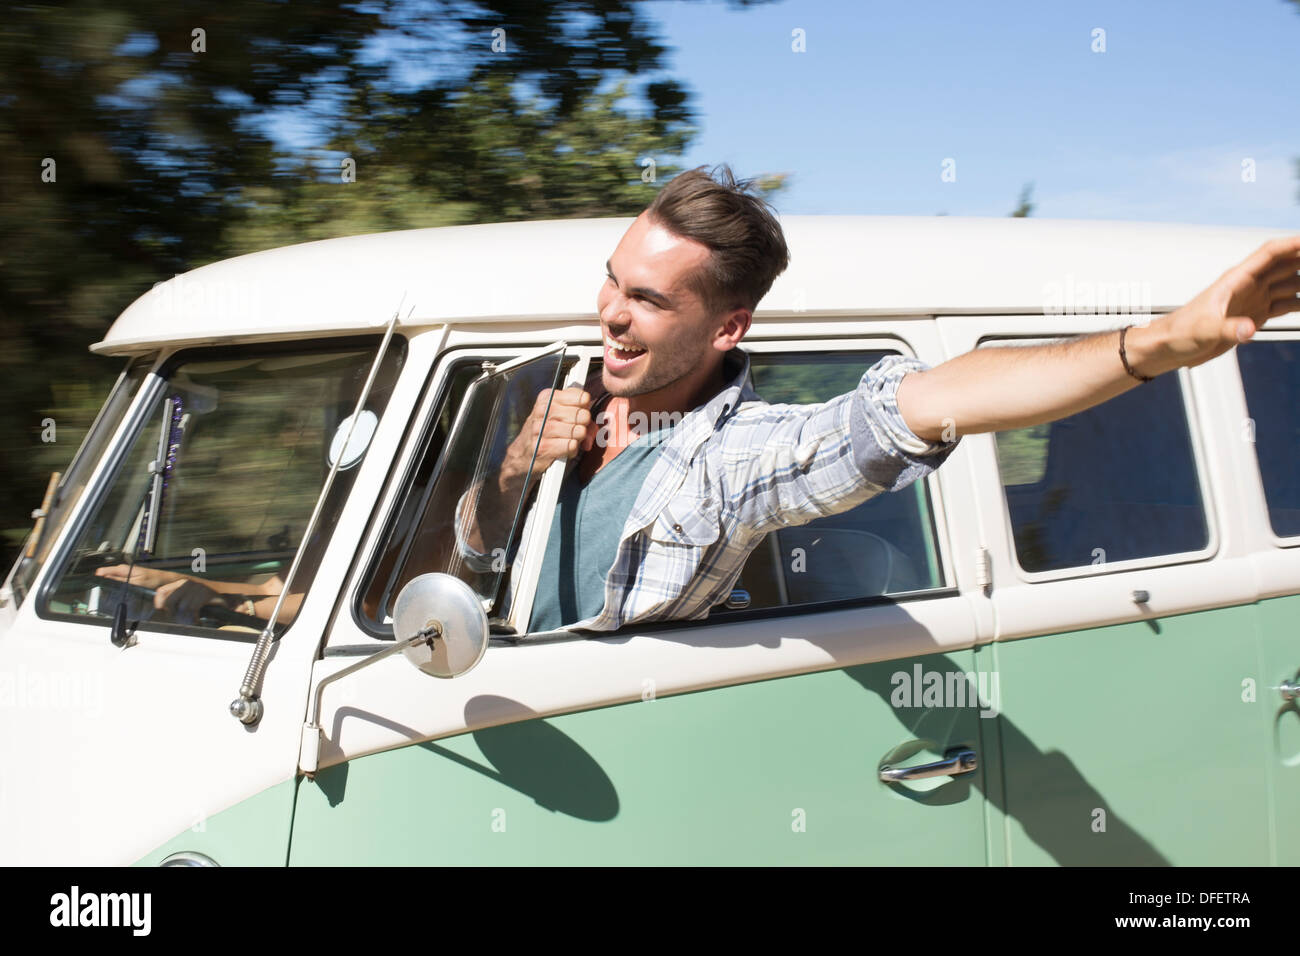 Man leaning head out camper van window - Stock Image